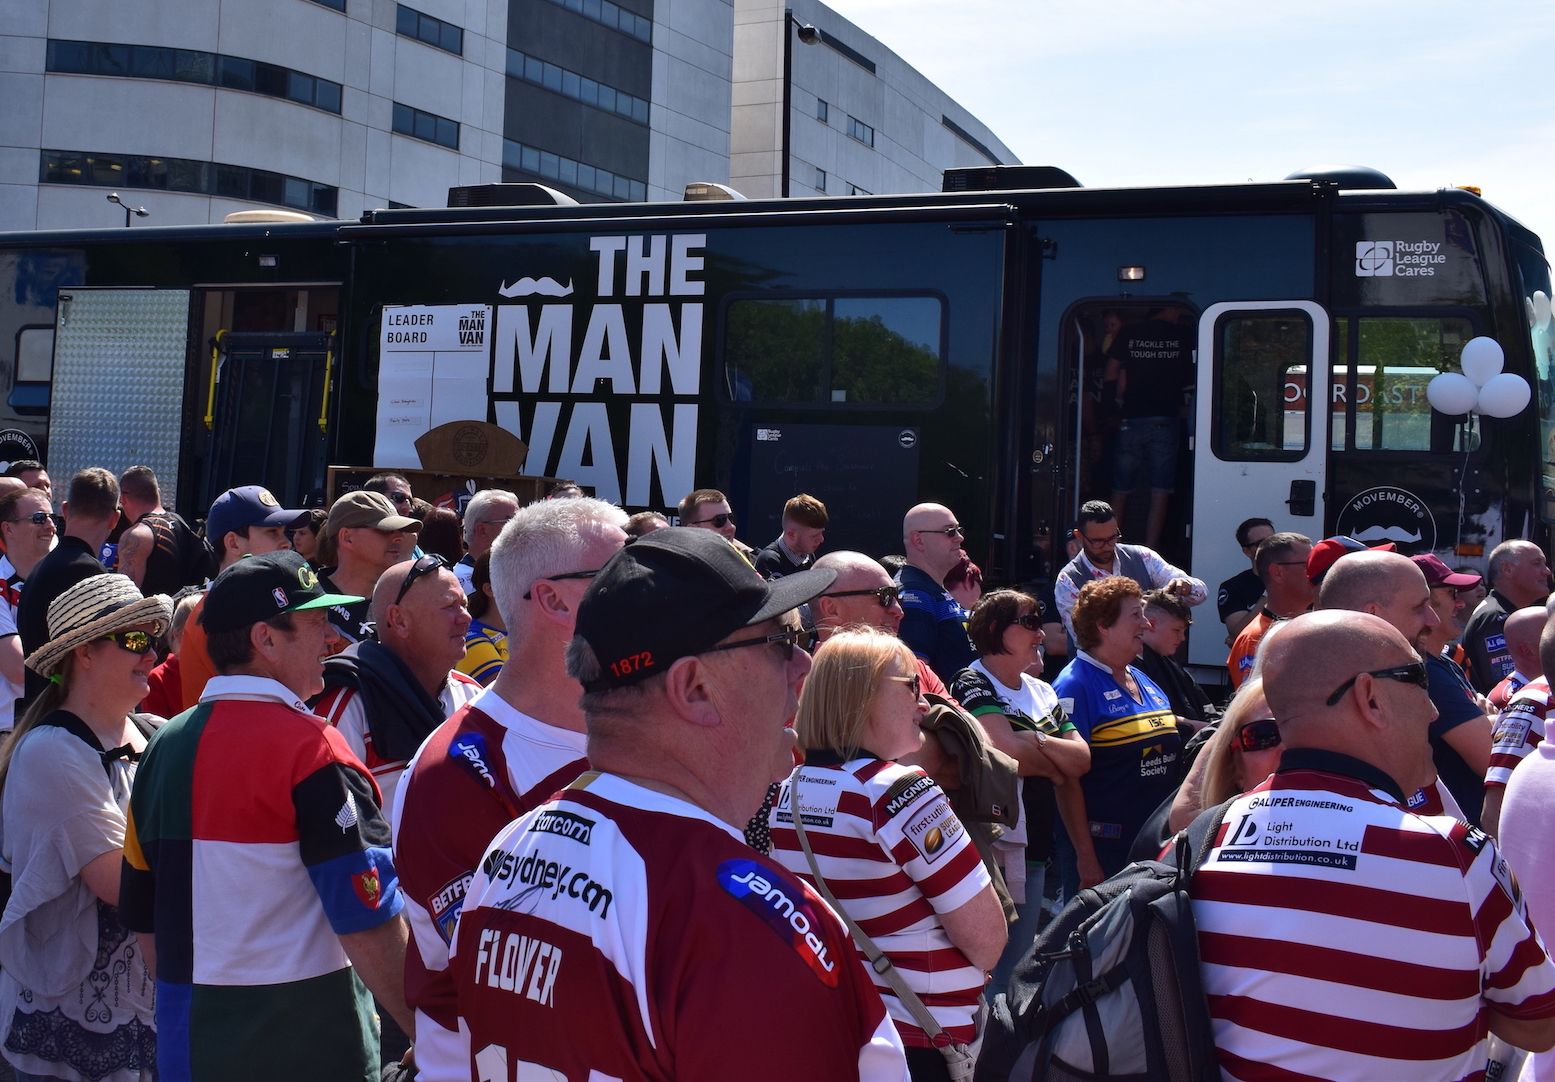 Man Van gets a magnificent reaction from Rugby League fans